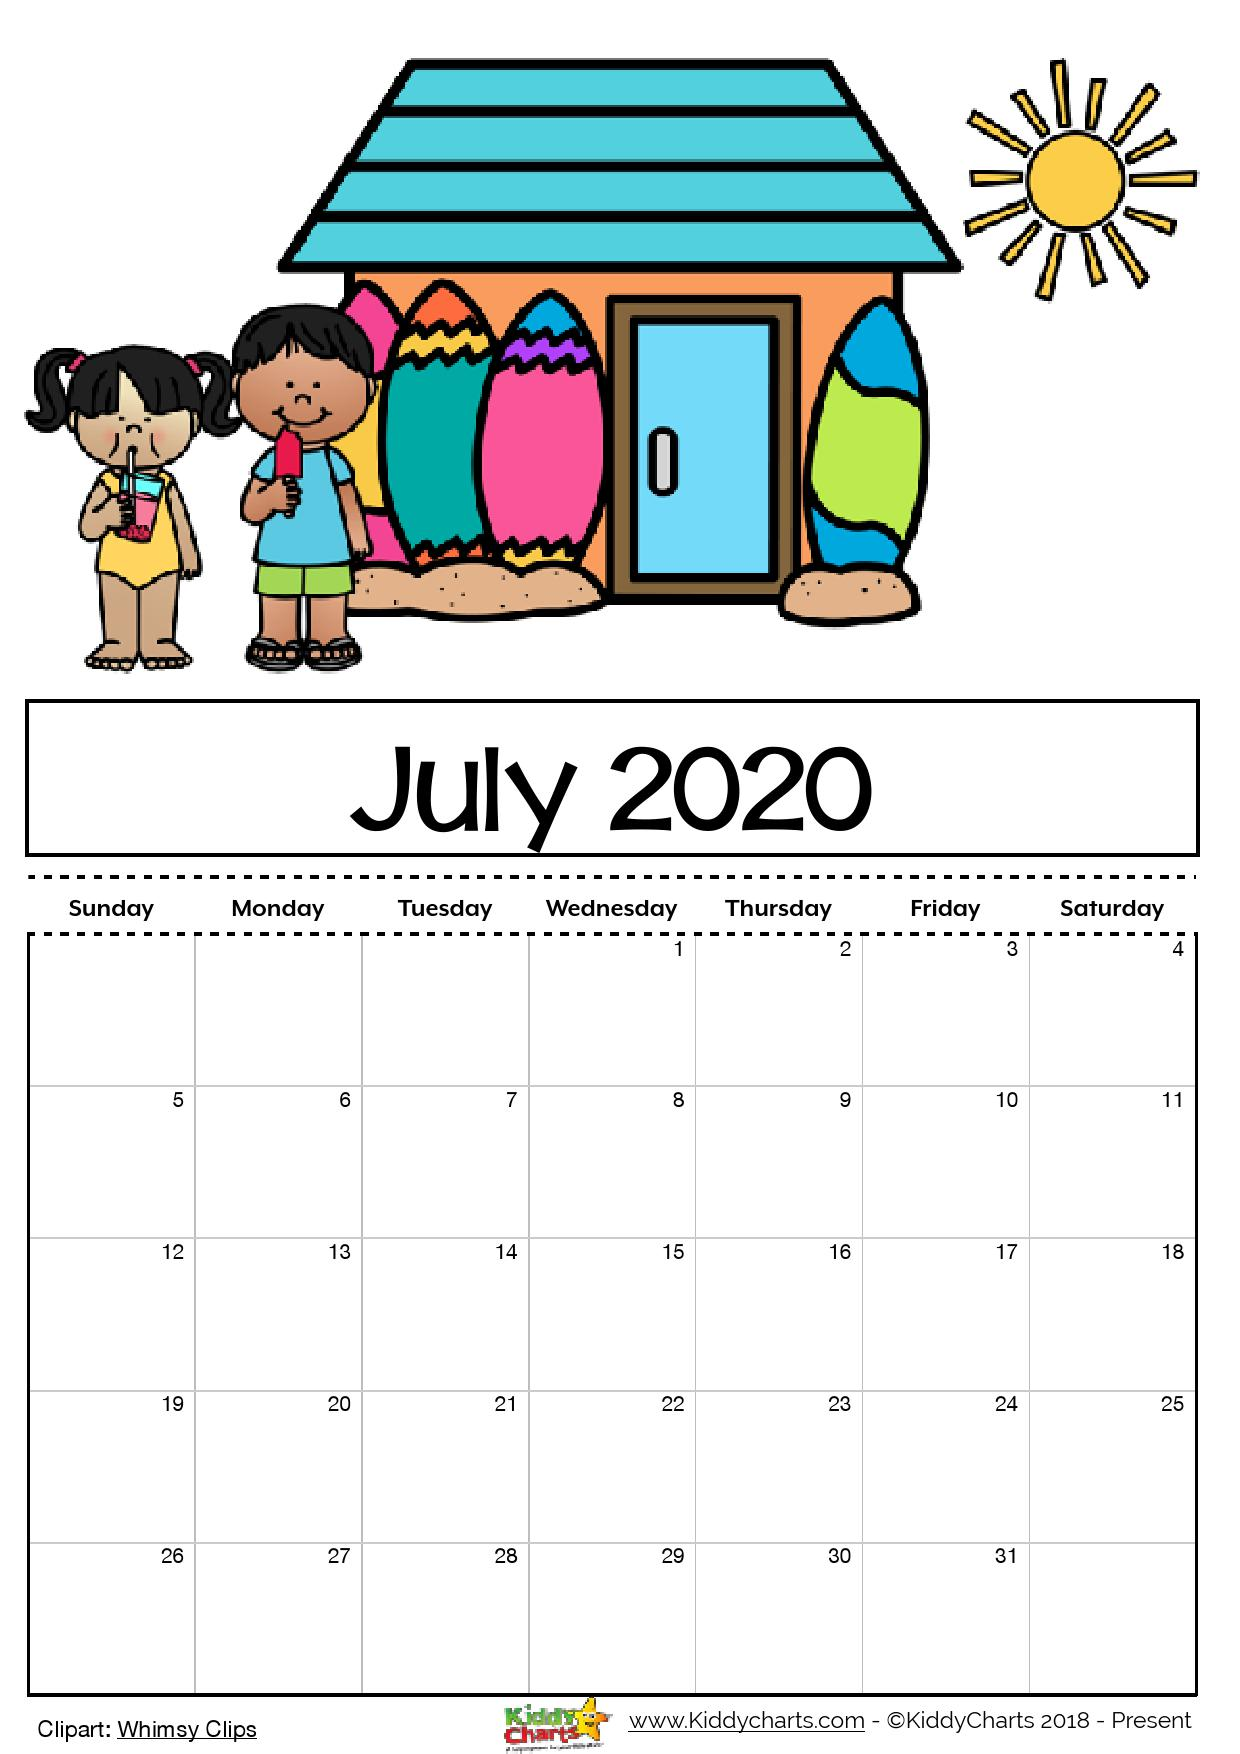 Looking for a free printable 2020 calendar? Then we've got it for you - come take a look now! #calendar2020 #printables #kidsprintables #calendars #kids